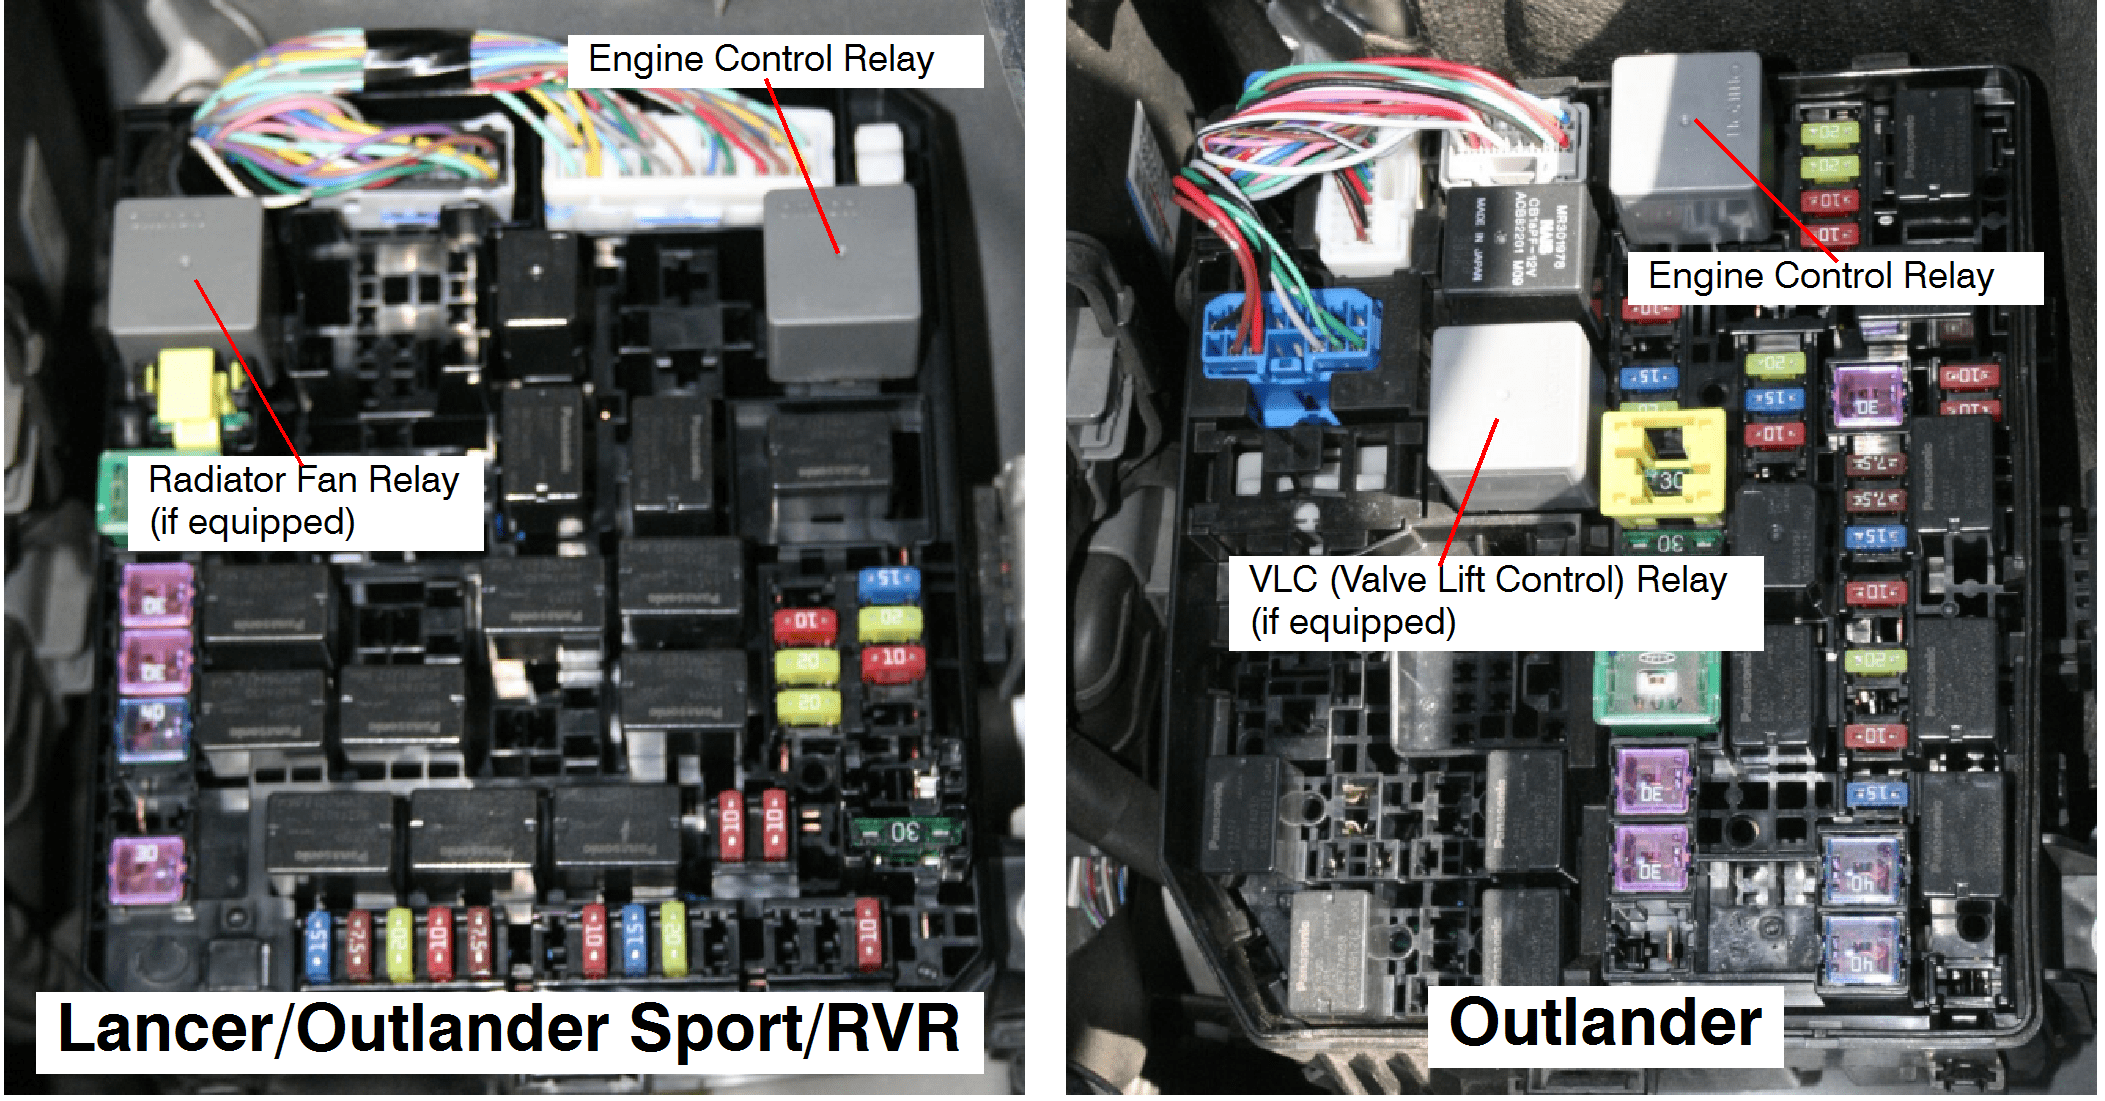 2010 mazda 3 parts diagram what is a grouped frequency sr-17-005 – electrical power control relay 2015-2017 mitsubishi |